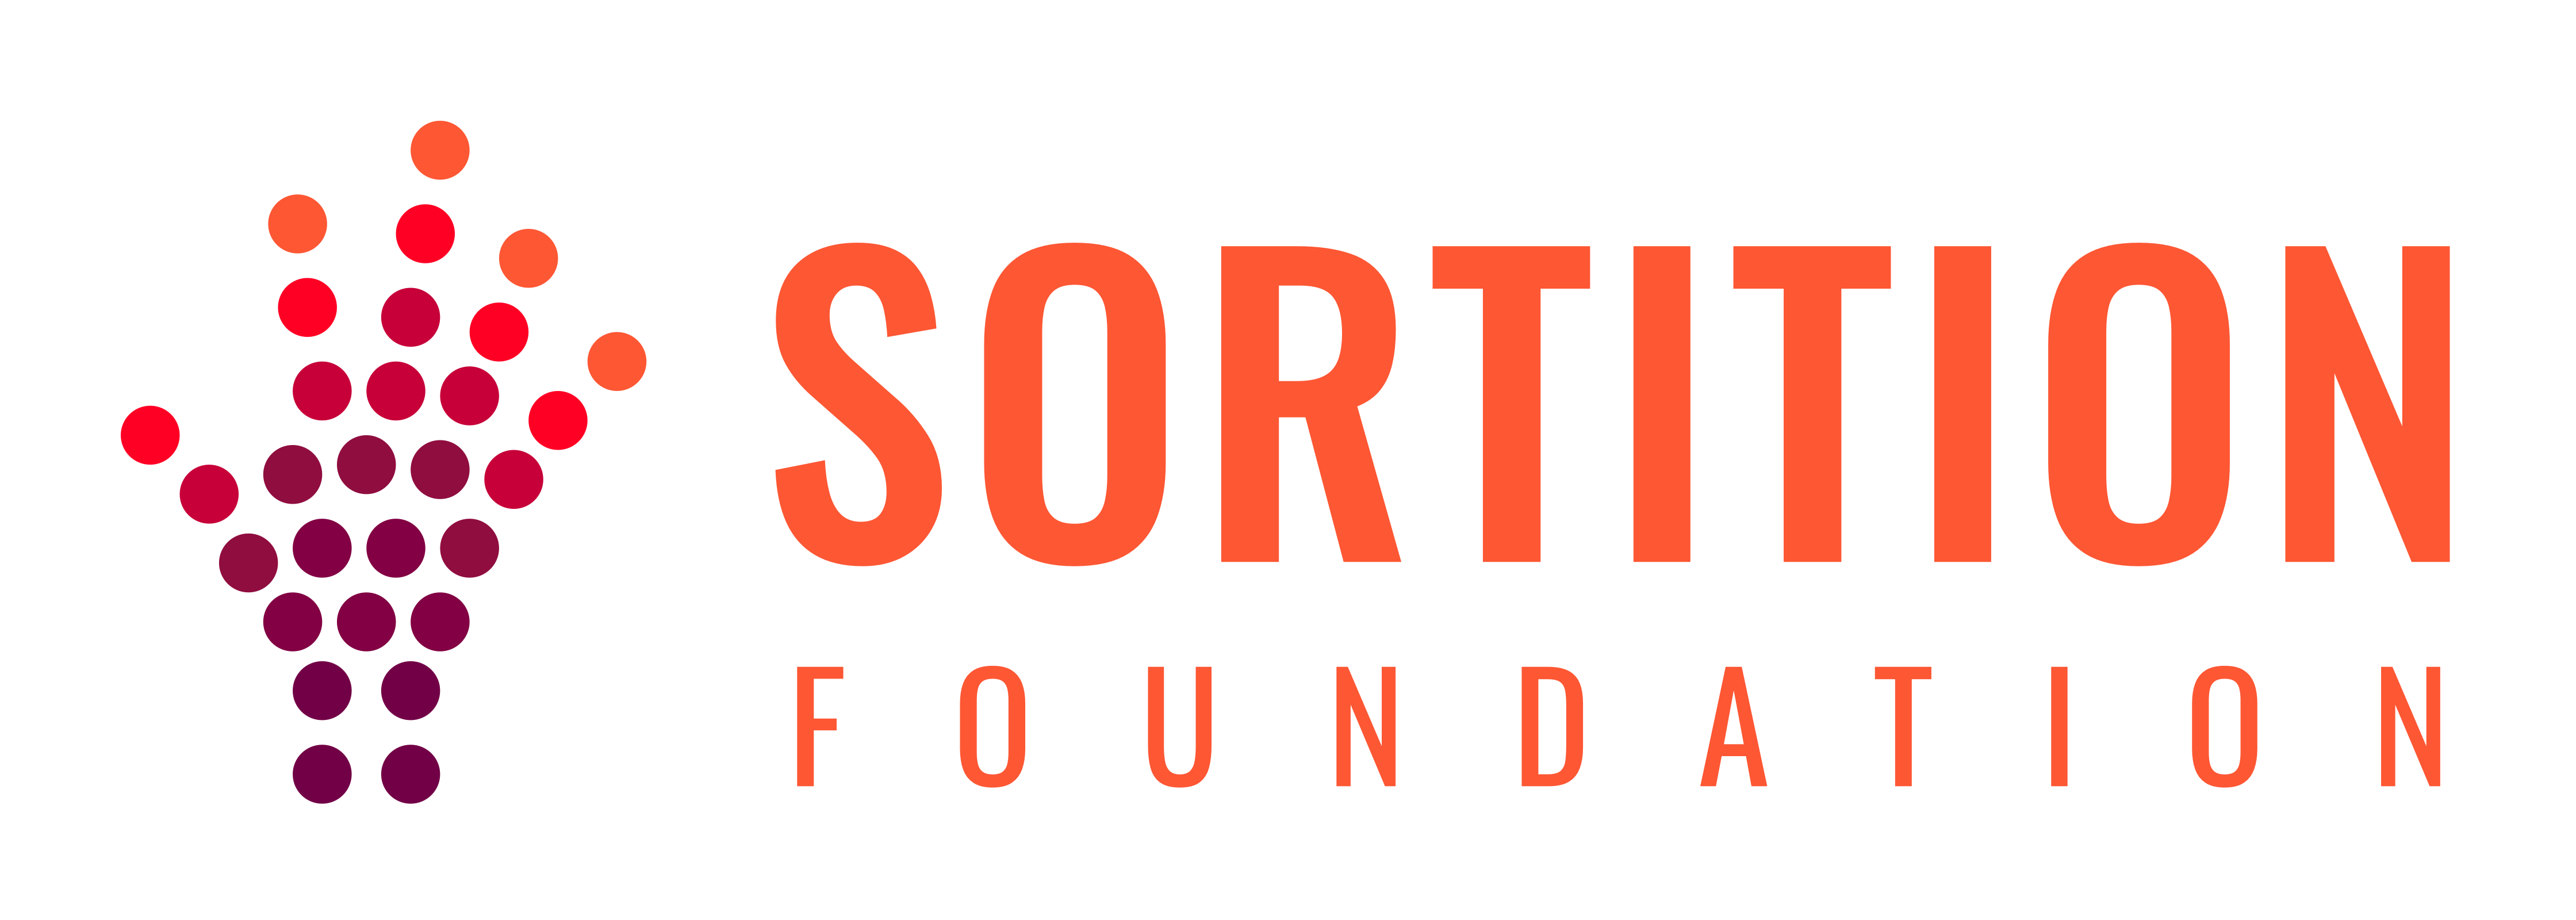 Sortition Foundation